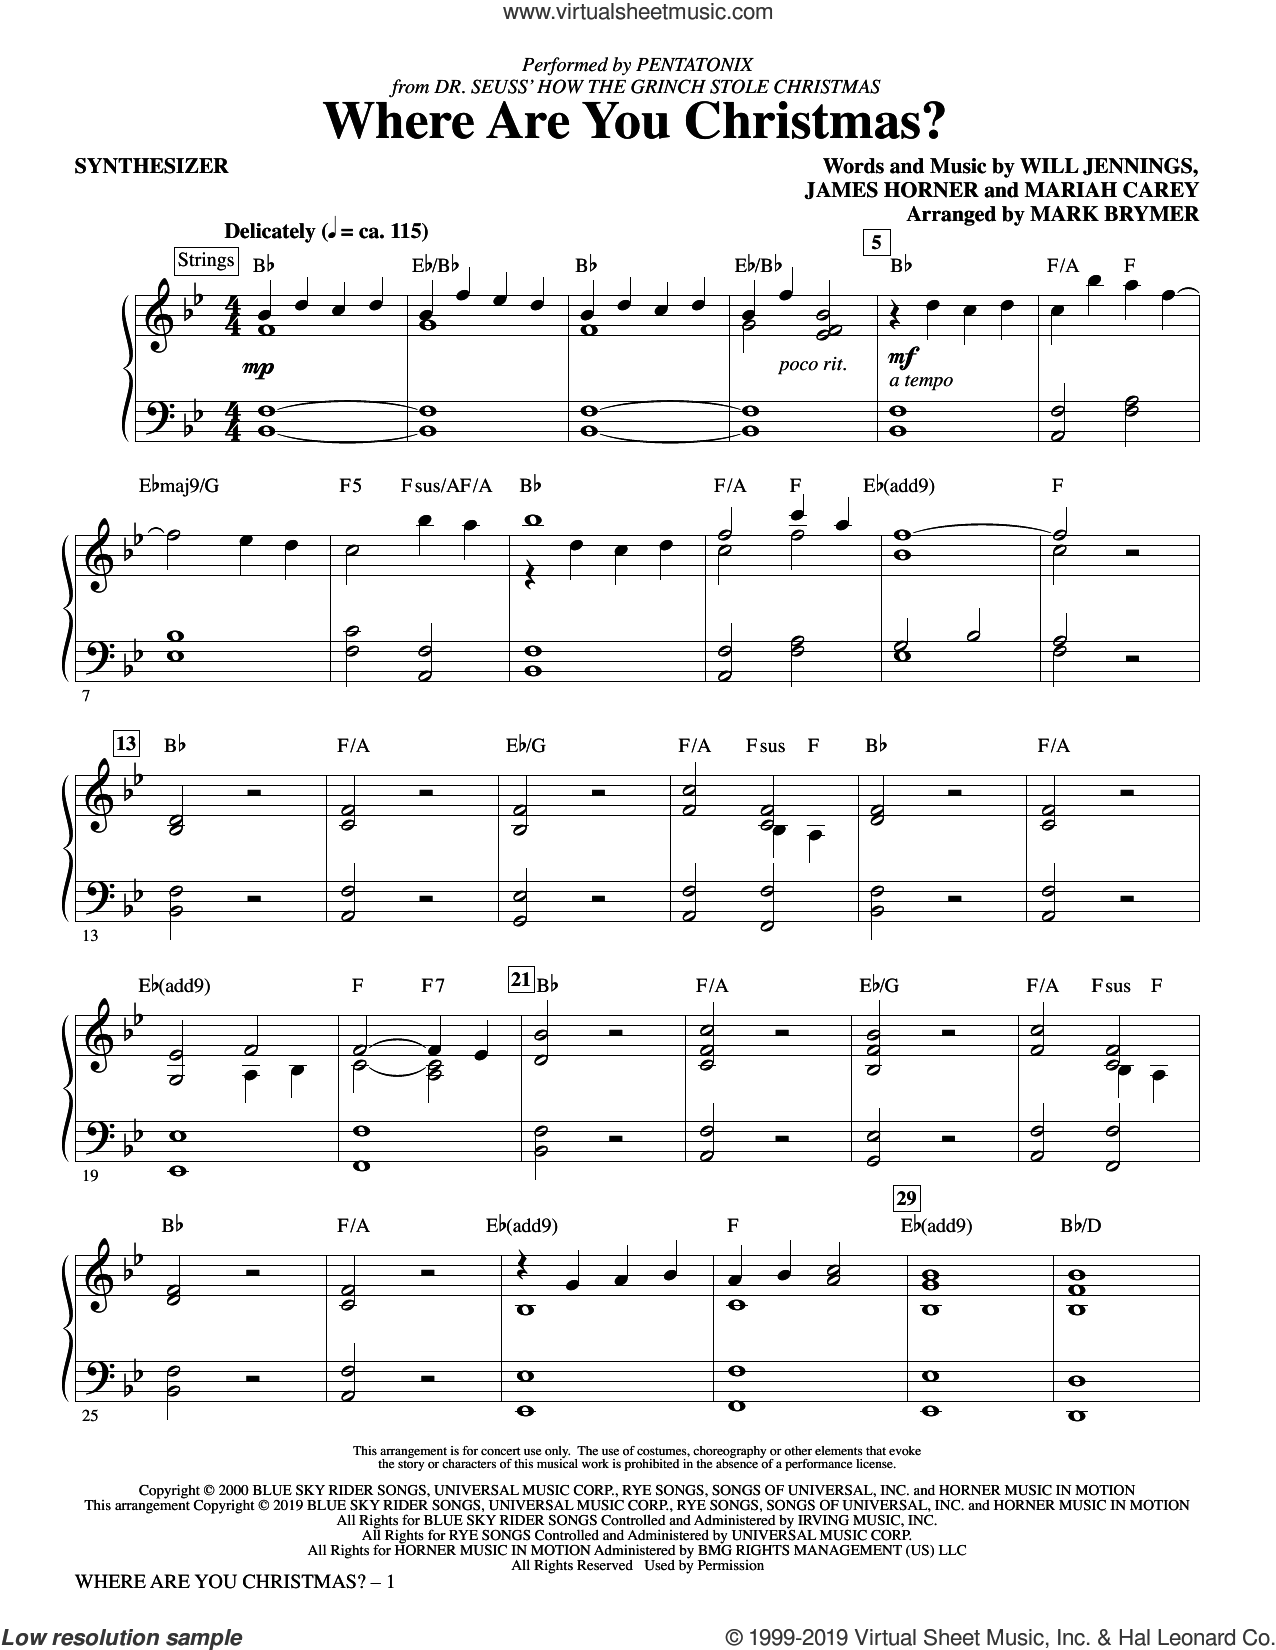 Where Are You Christmas? (from How The Grinch Stole Christmas) (arr. Mark Brymer) (complete set of parts) sheet music for orchestra/band by Pentatonix, Faith Hill, James Horner, Mariah Carey, Mark Brymer and Will Jennings, intermediate skill level